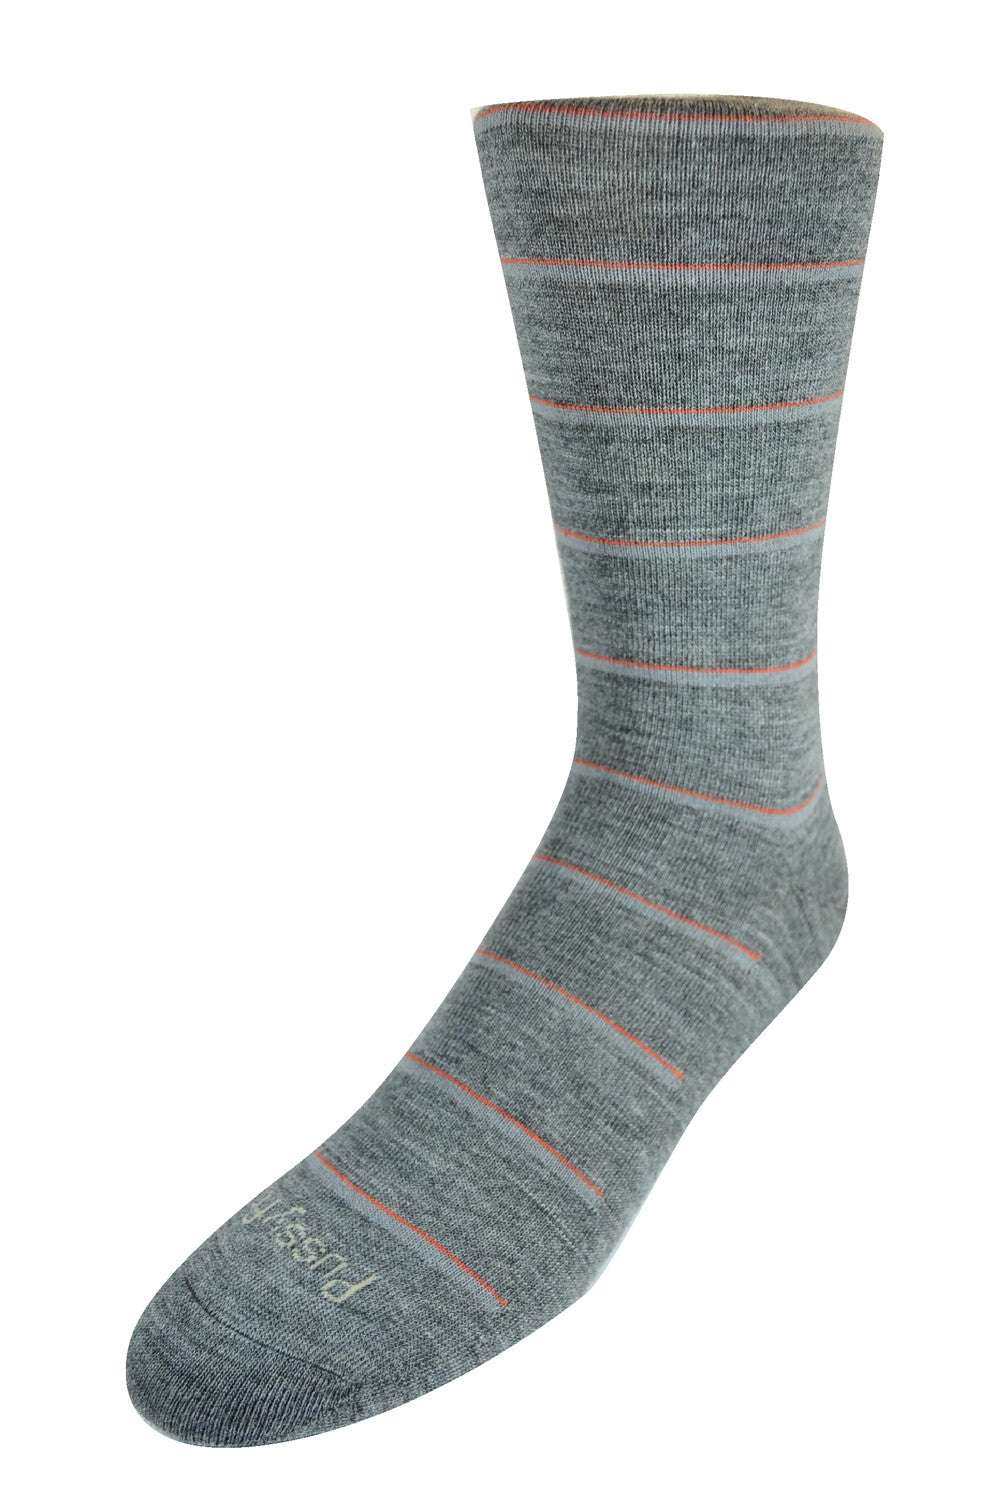 Pussyfoot Wool Non-Elastic Health Socks - Mid Grey Stripe